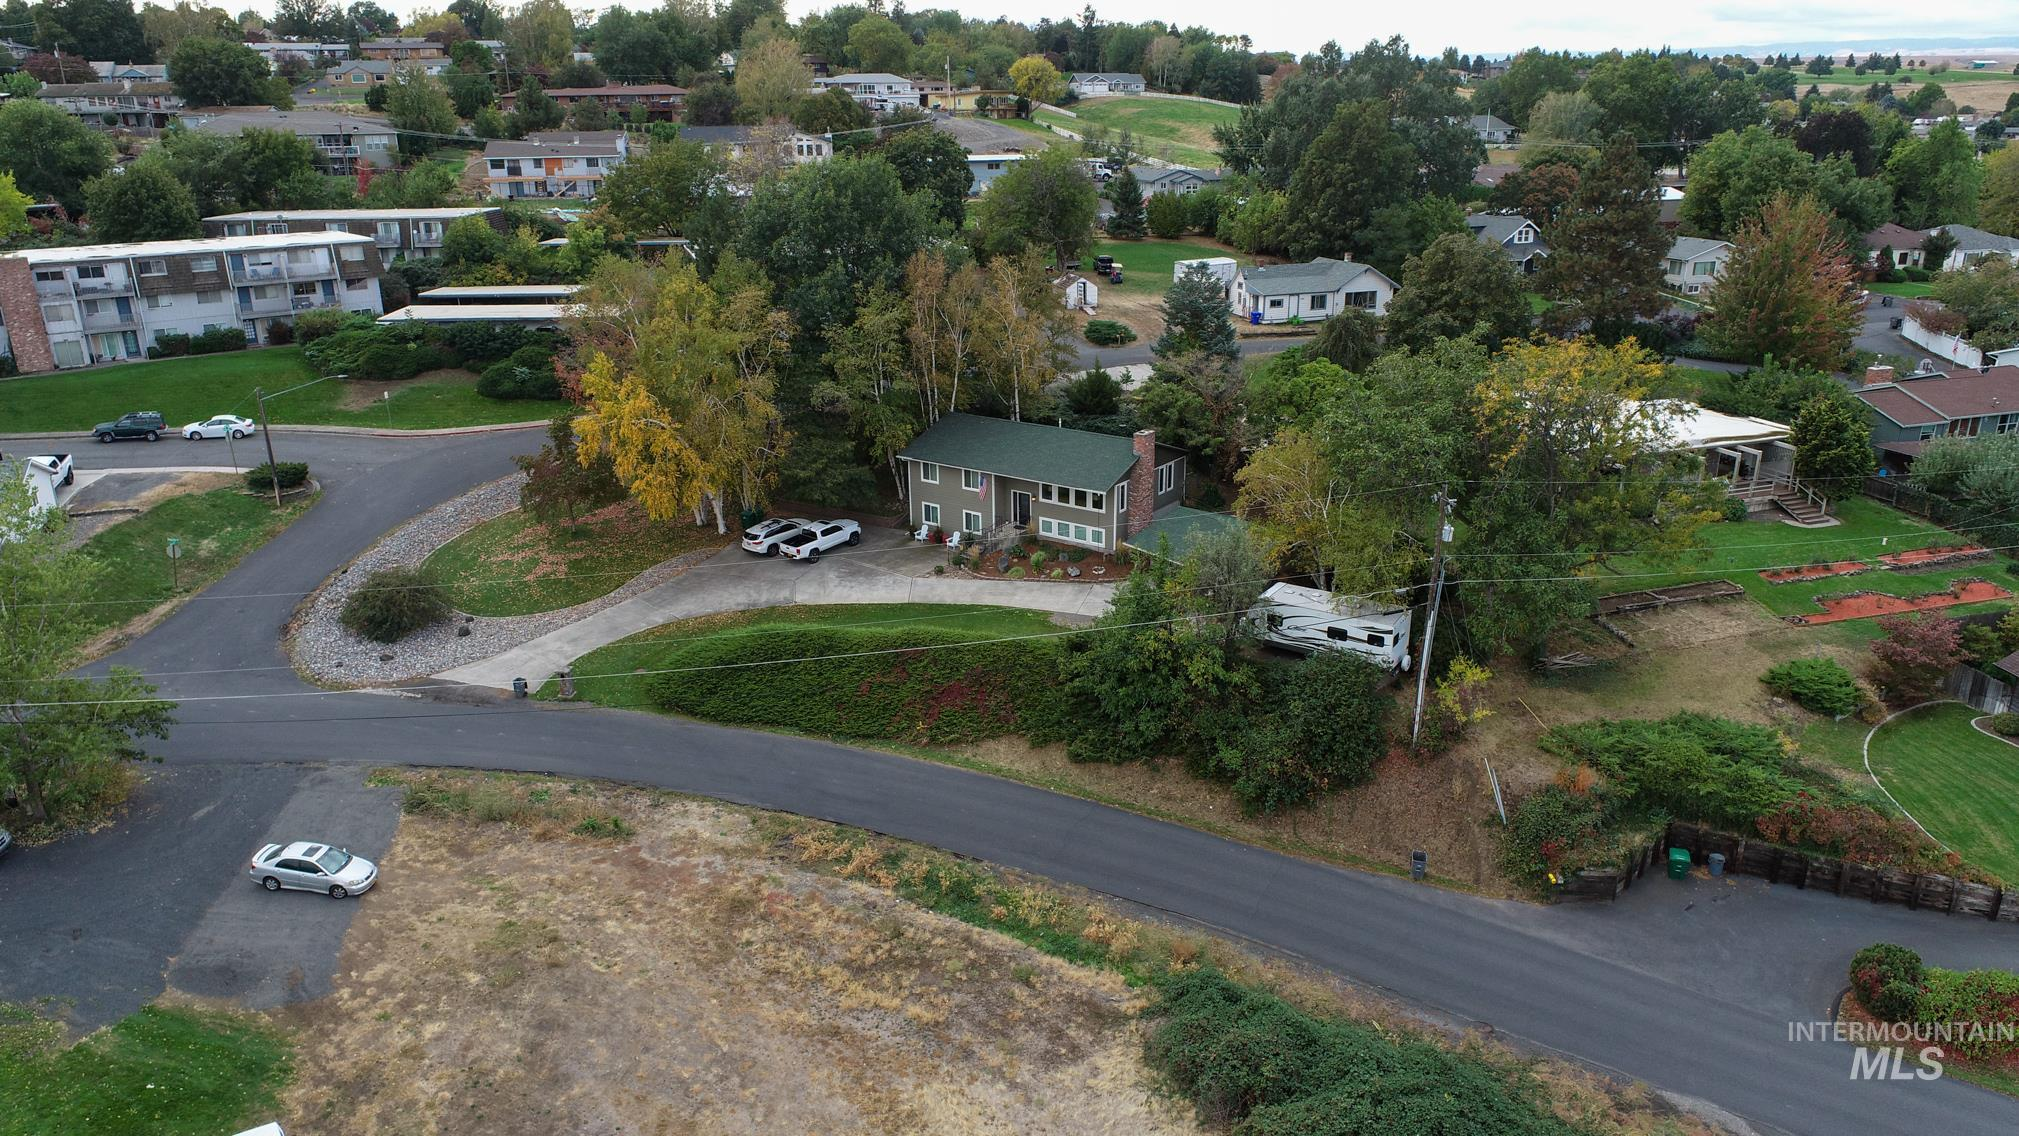 1302 Vineyard Drive, Lewiston, Idaho 83501-6328, 5 Bedrooms, 3 Bathrooms, Residential For Sale, Price $350,000, 98784610